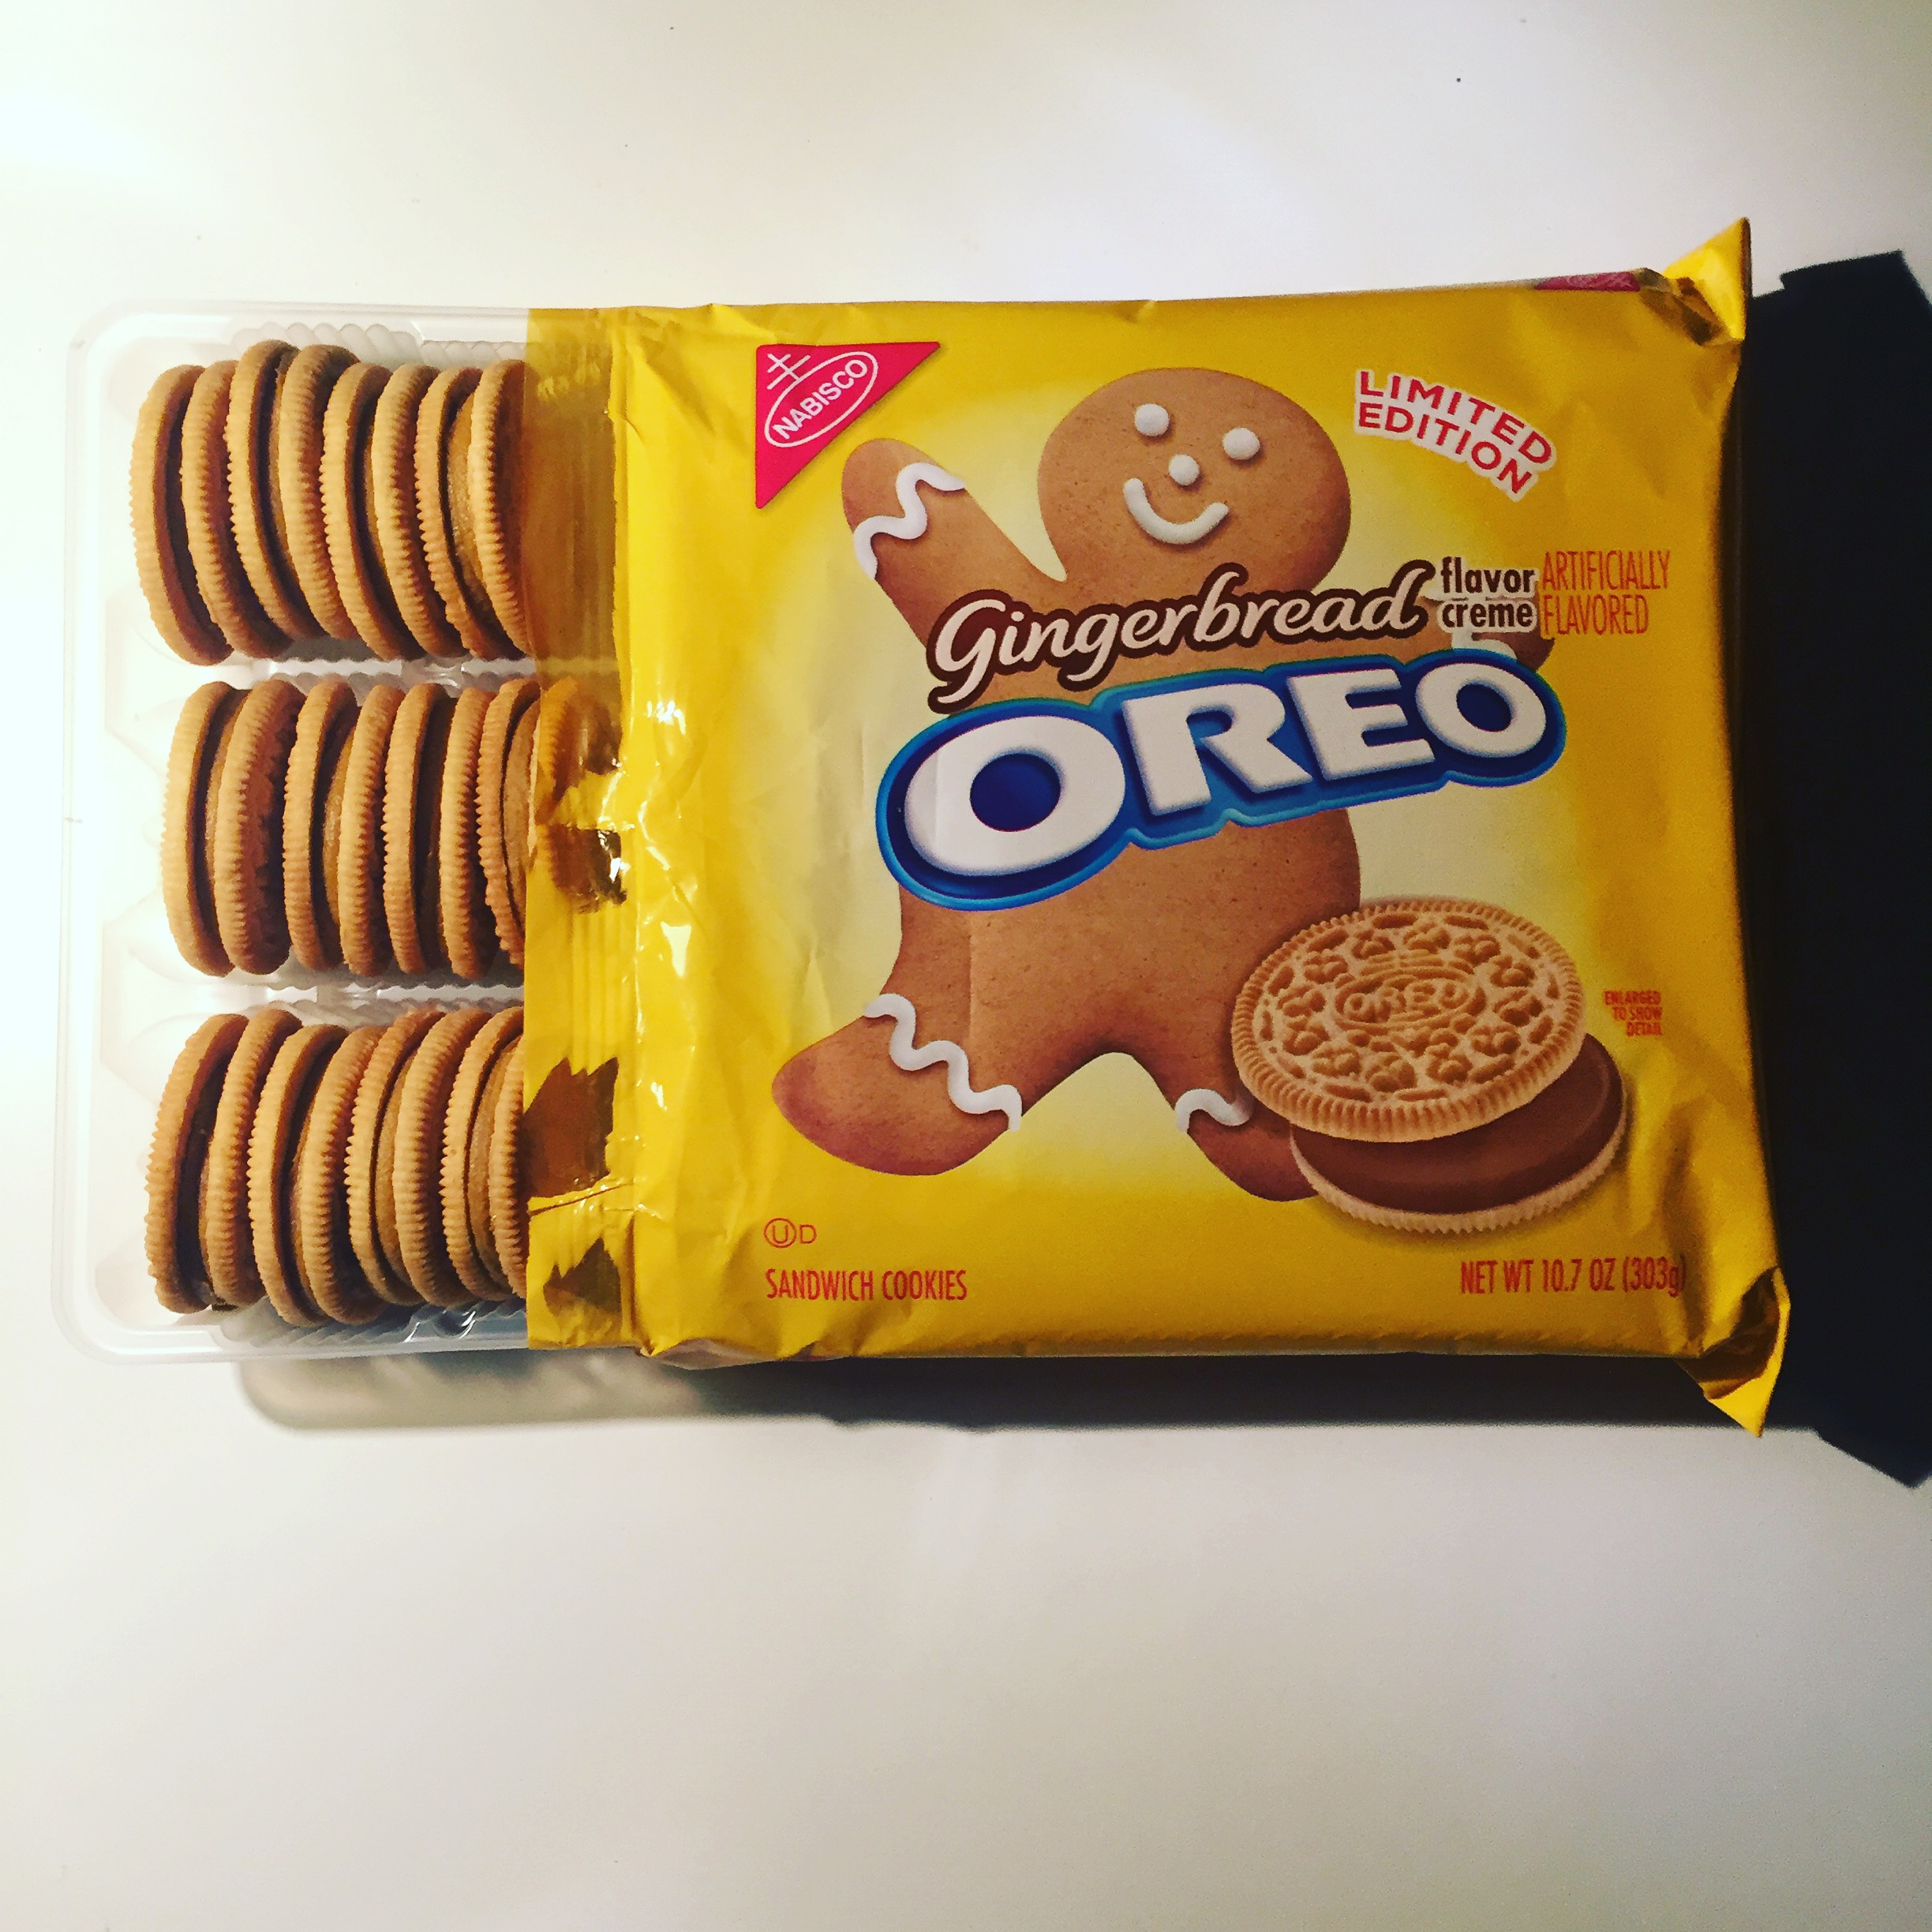 Which cookies are no longer made by Nabisco as of 2015?